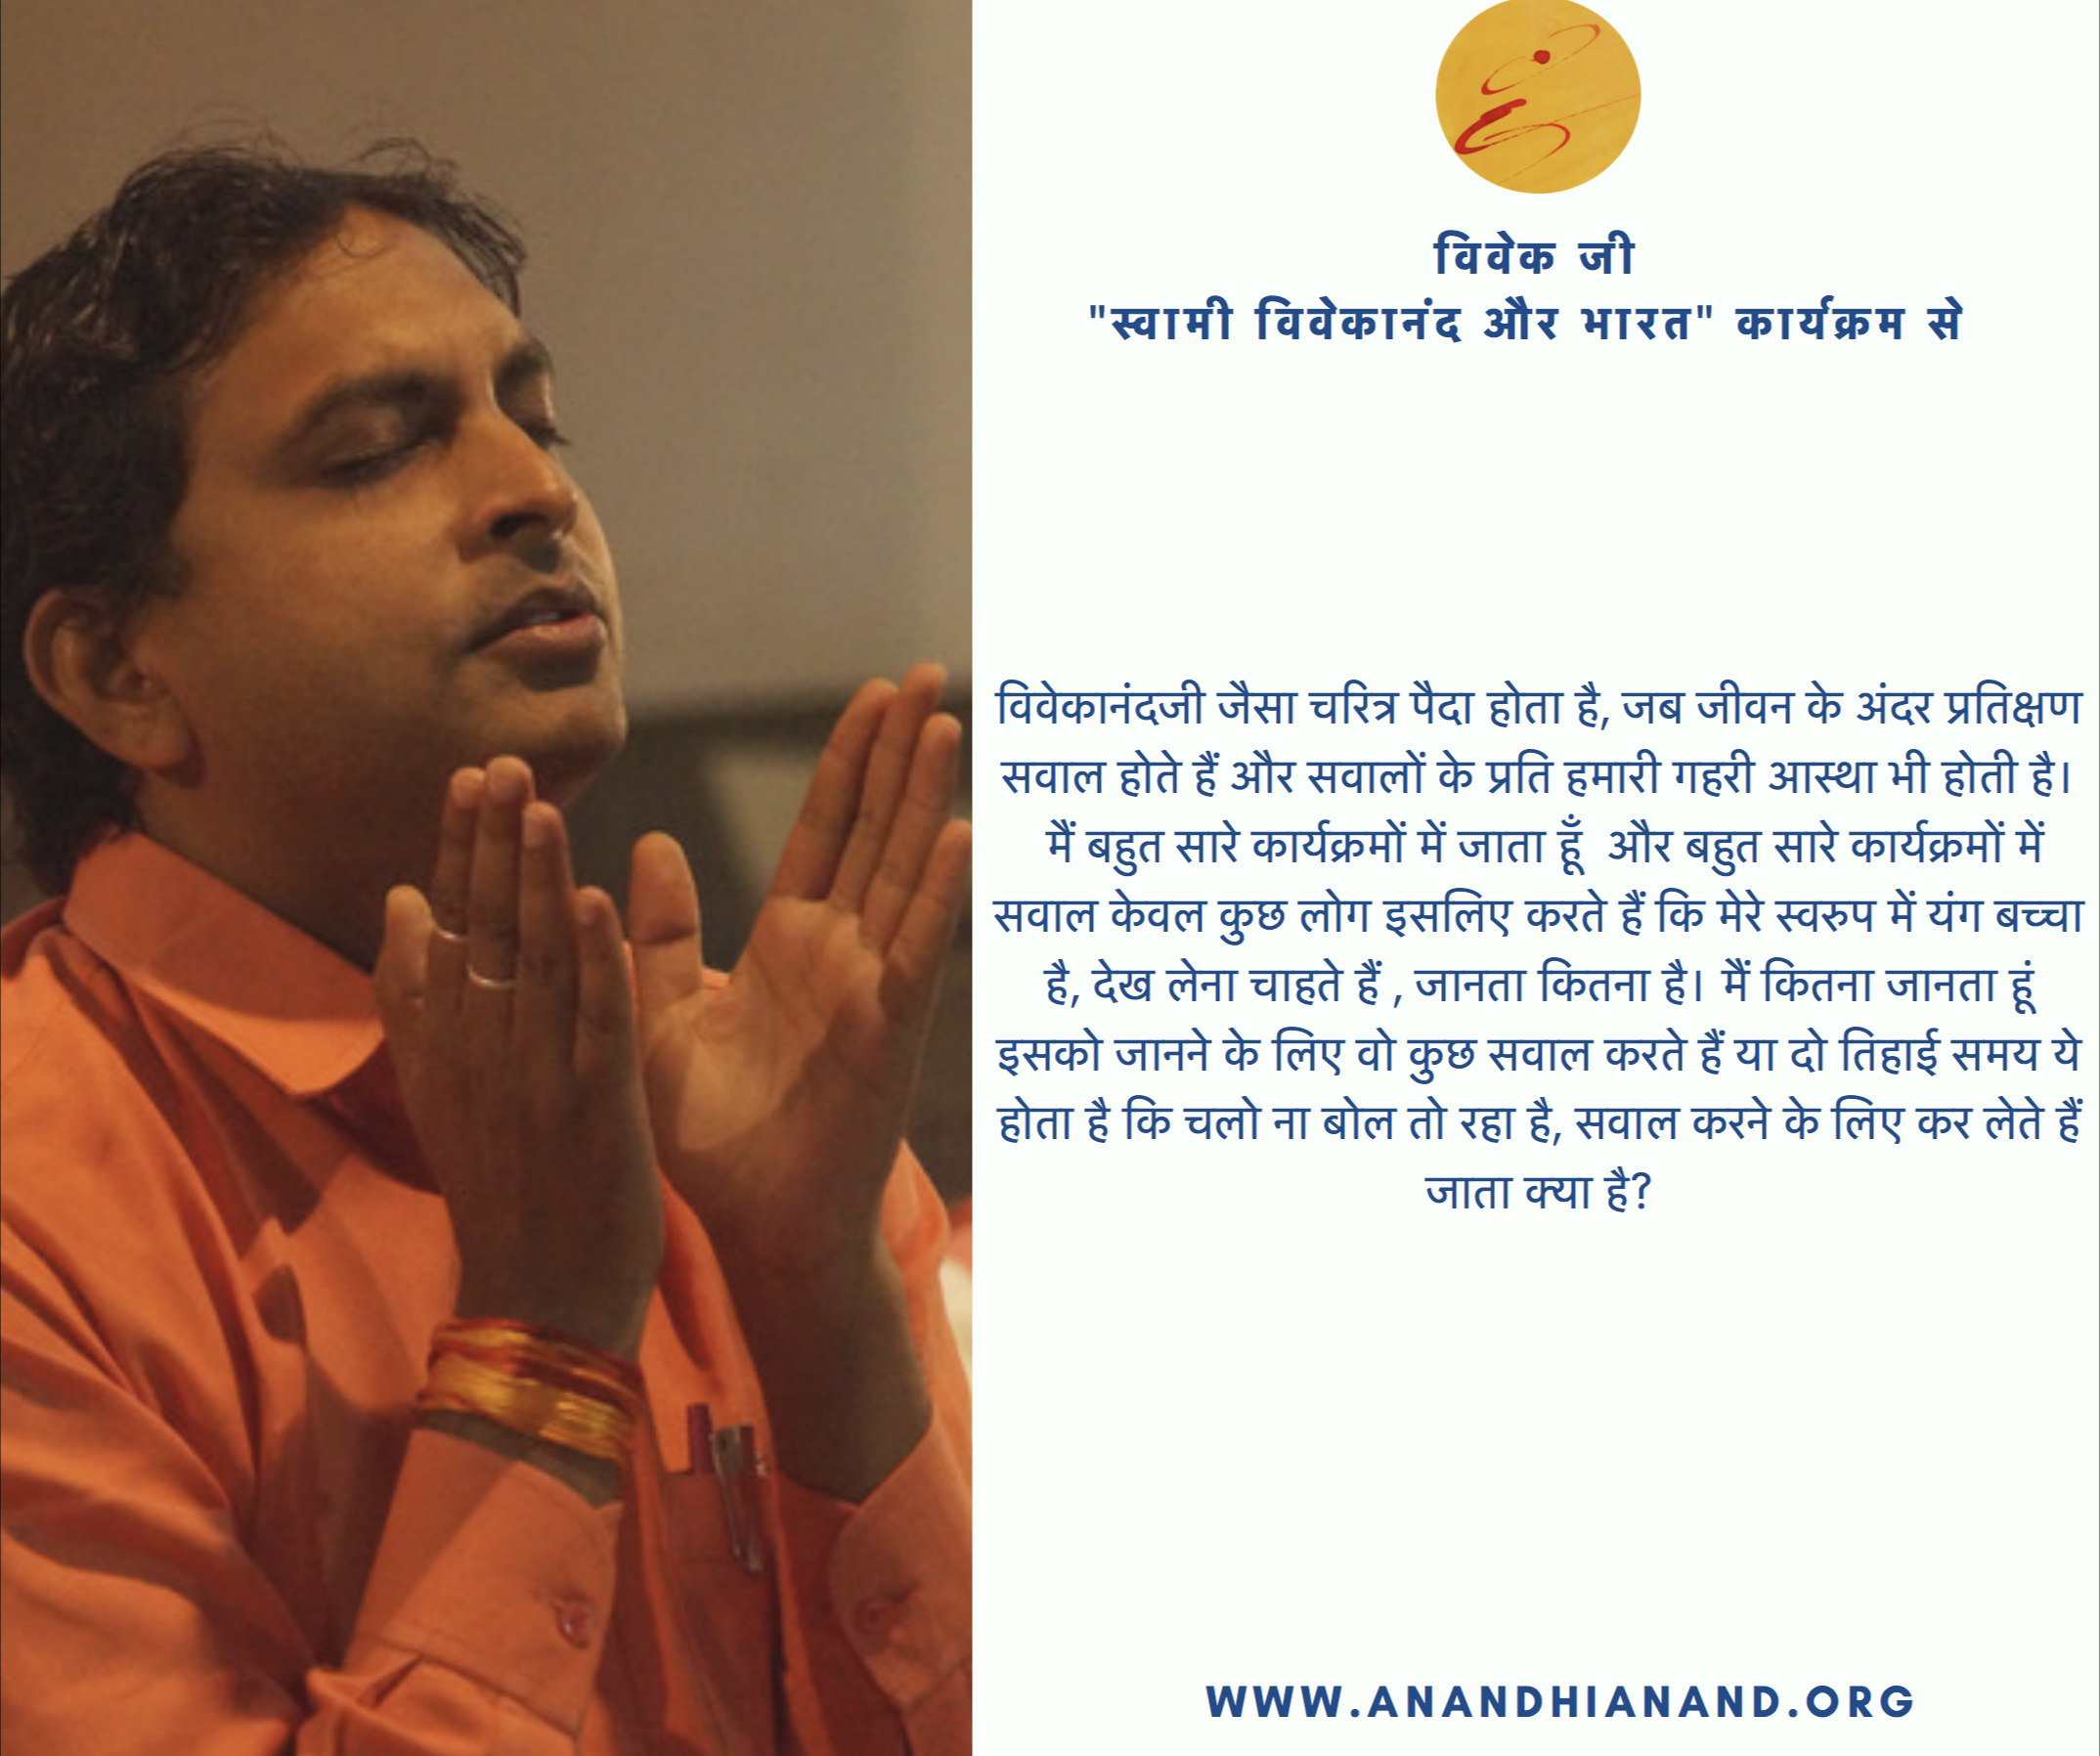 Swami ji and question